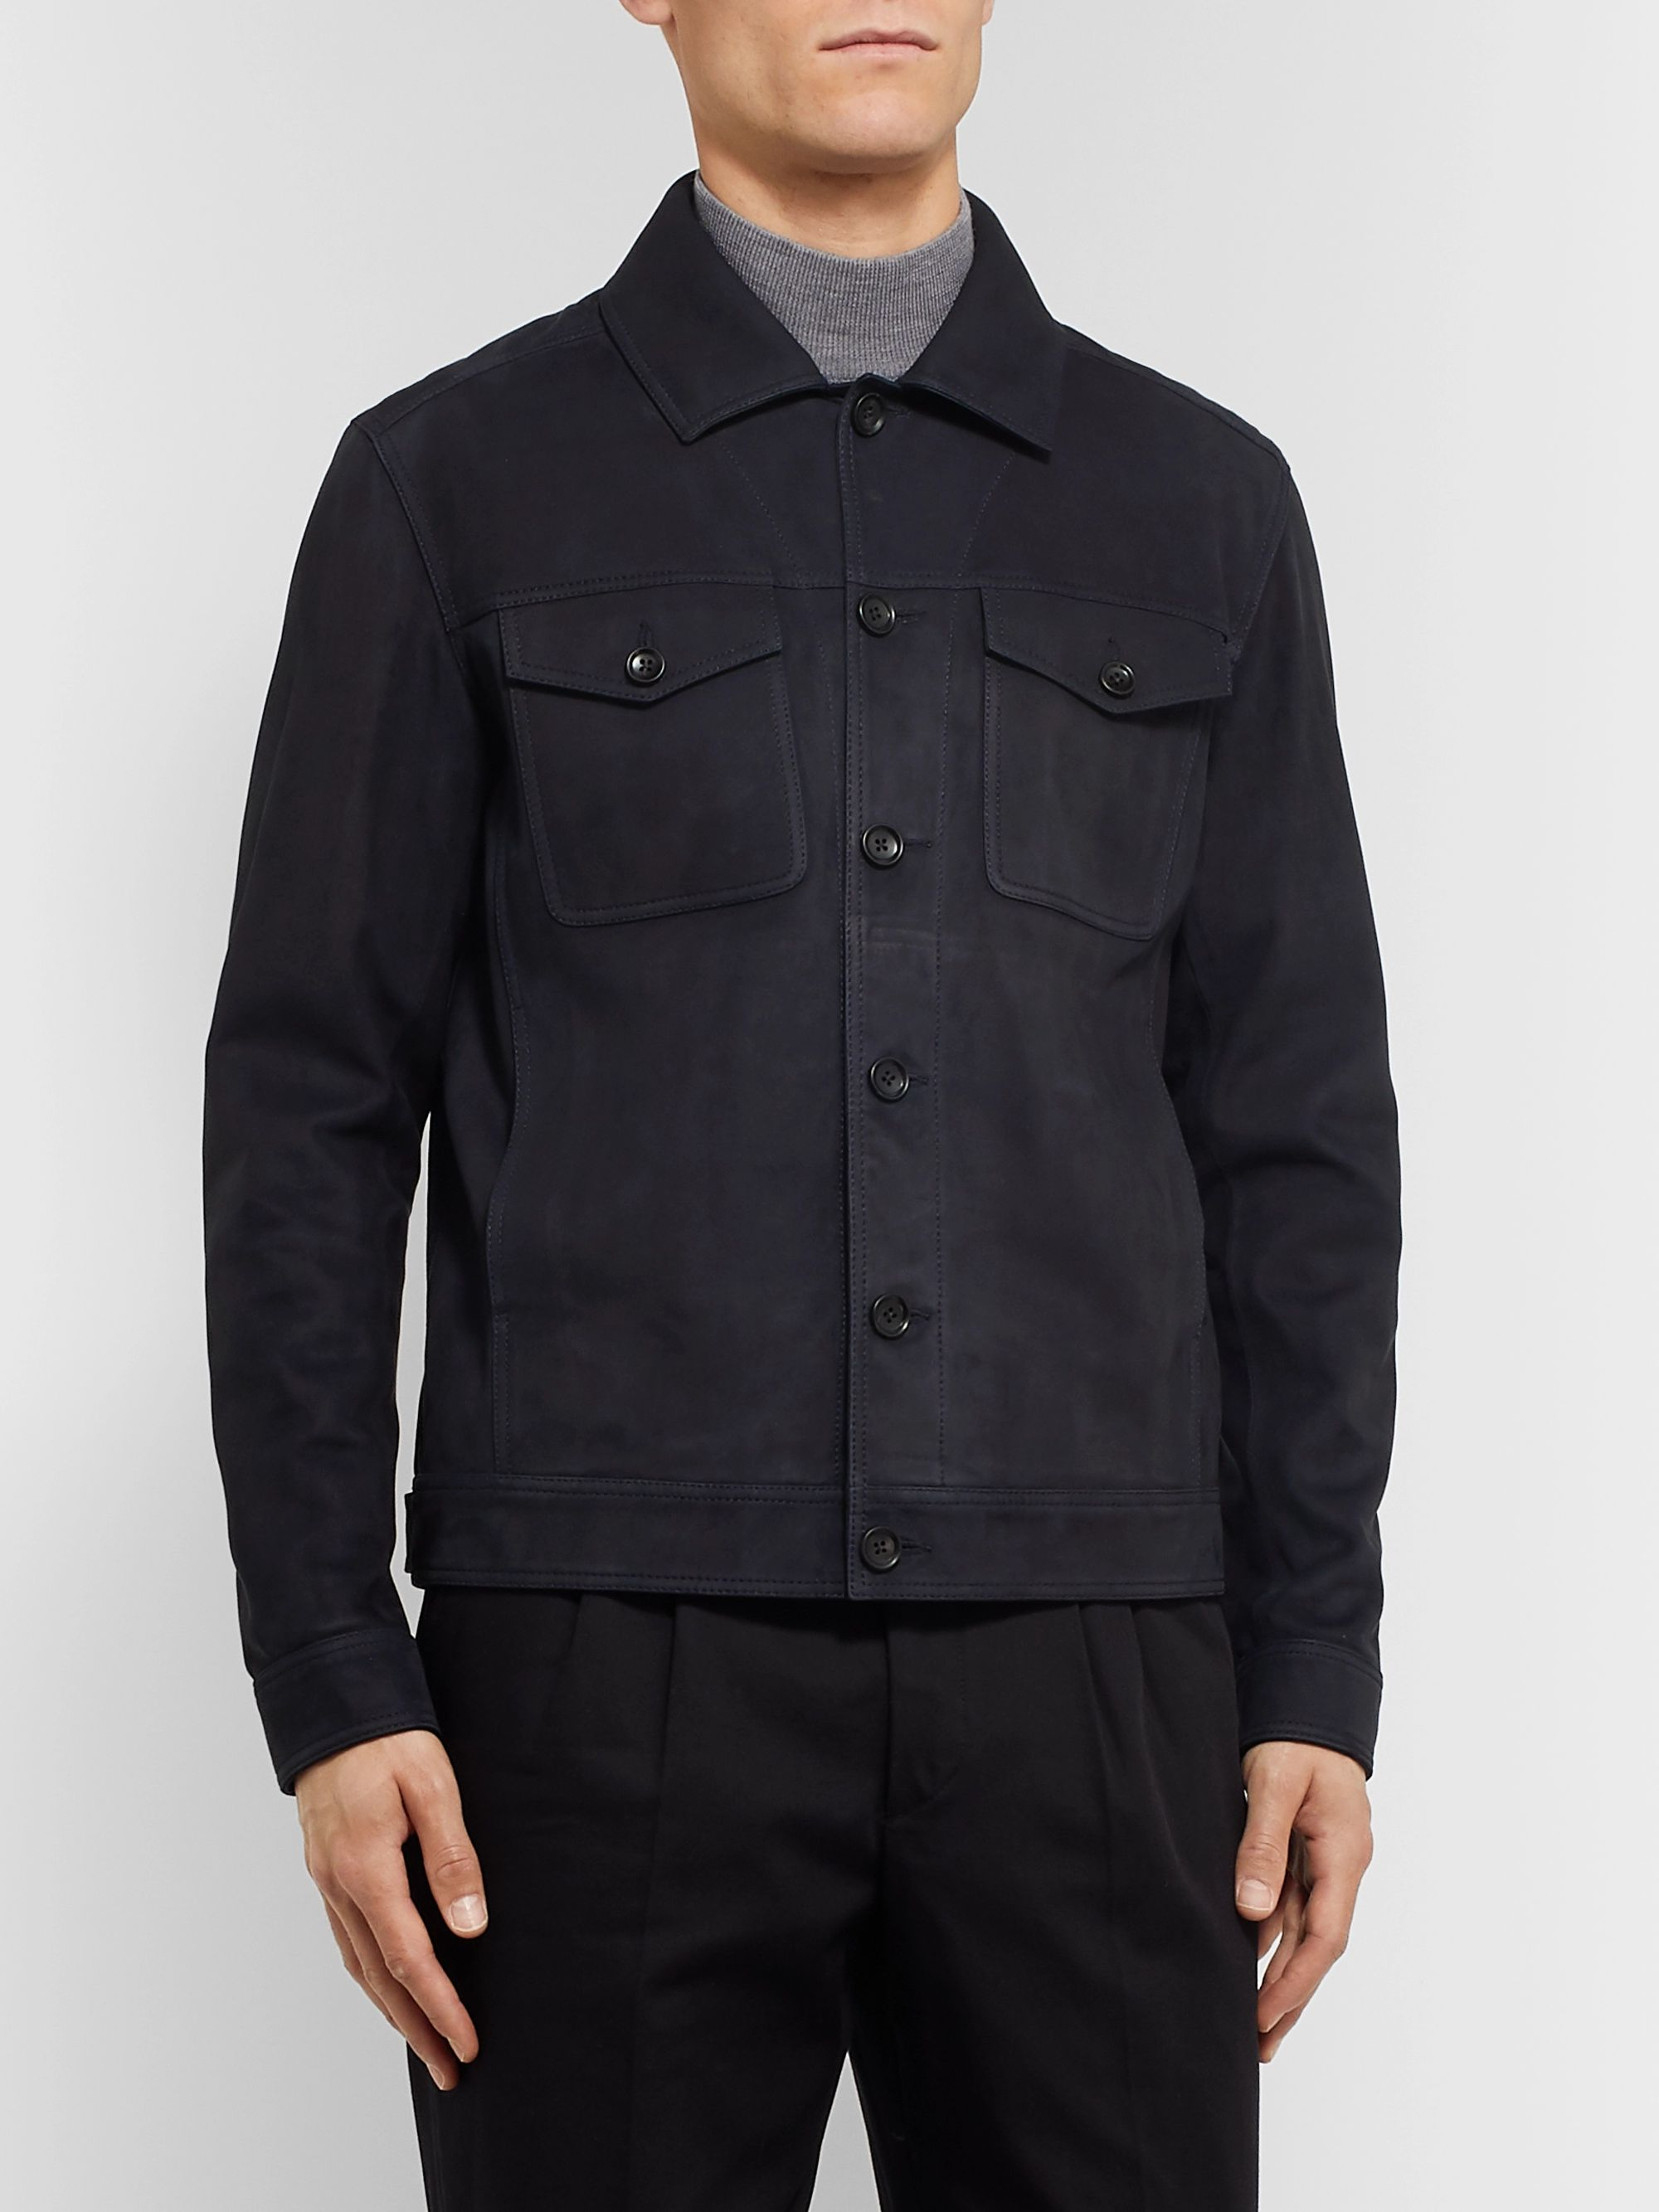 Mr P. Nubuck Trucker Jacket